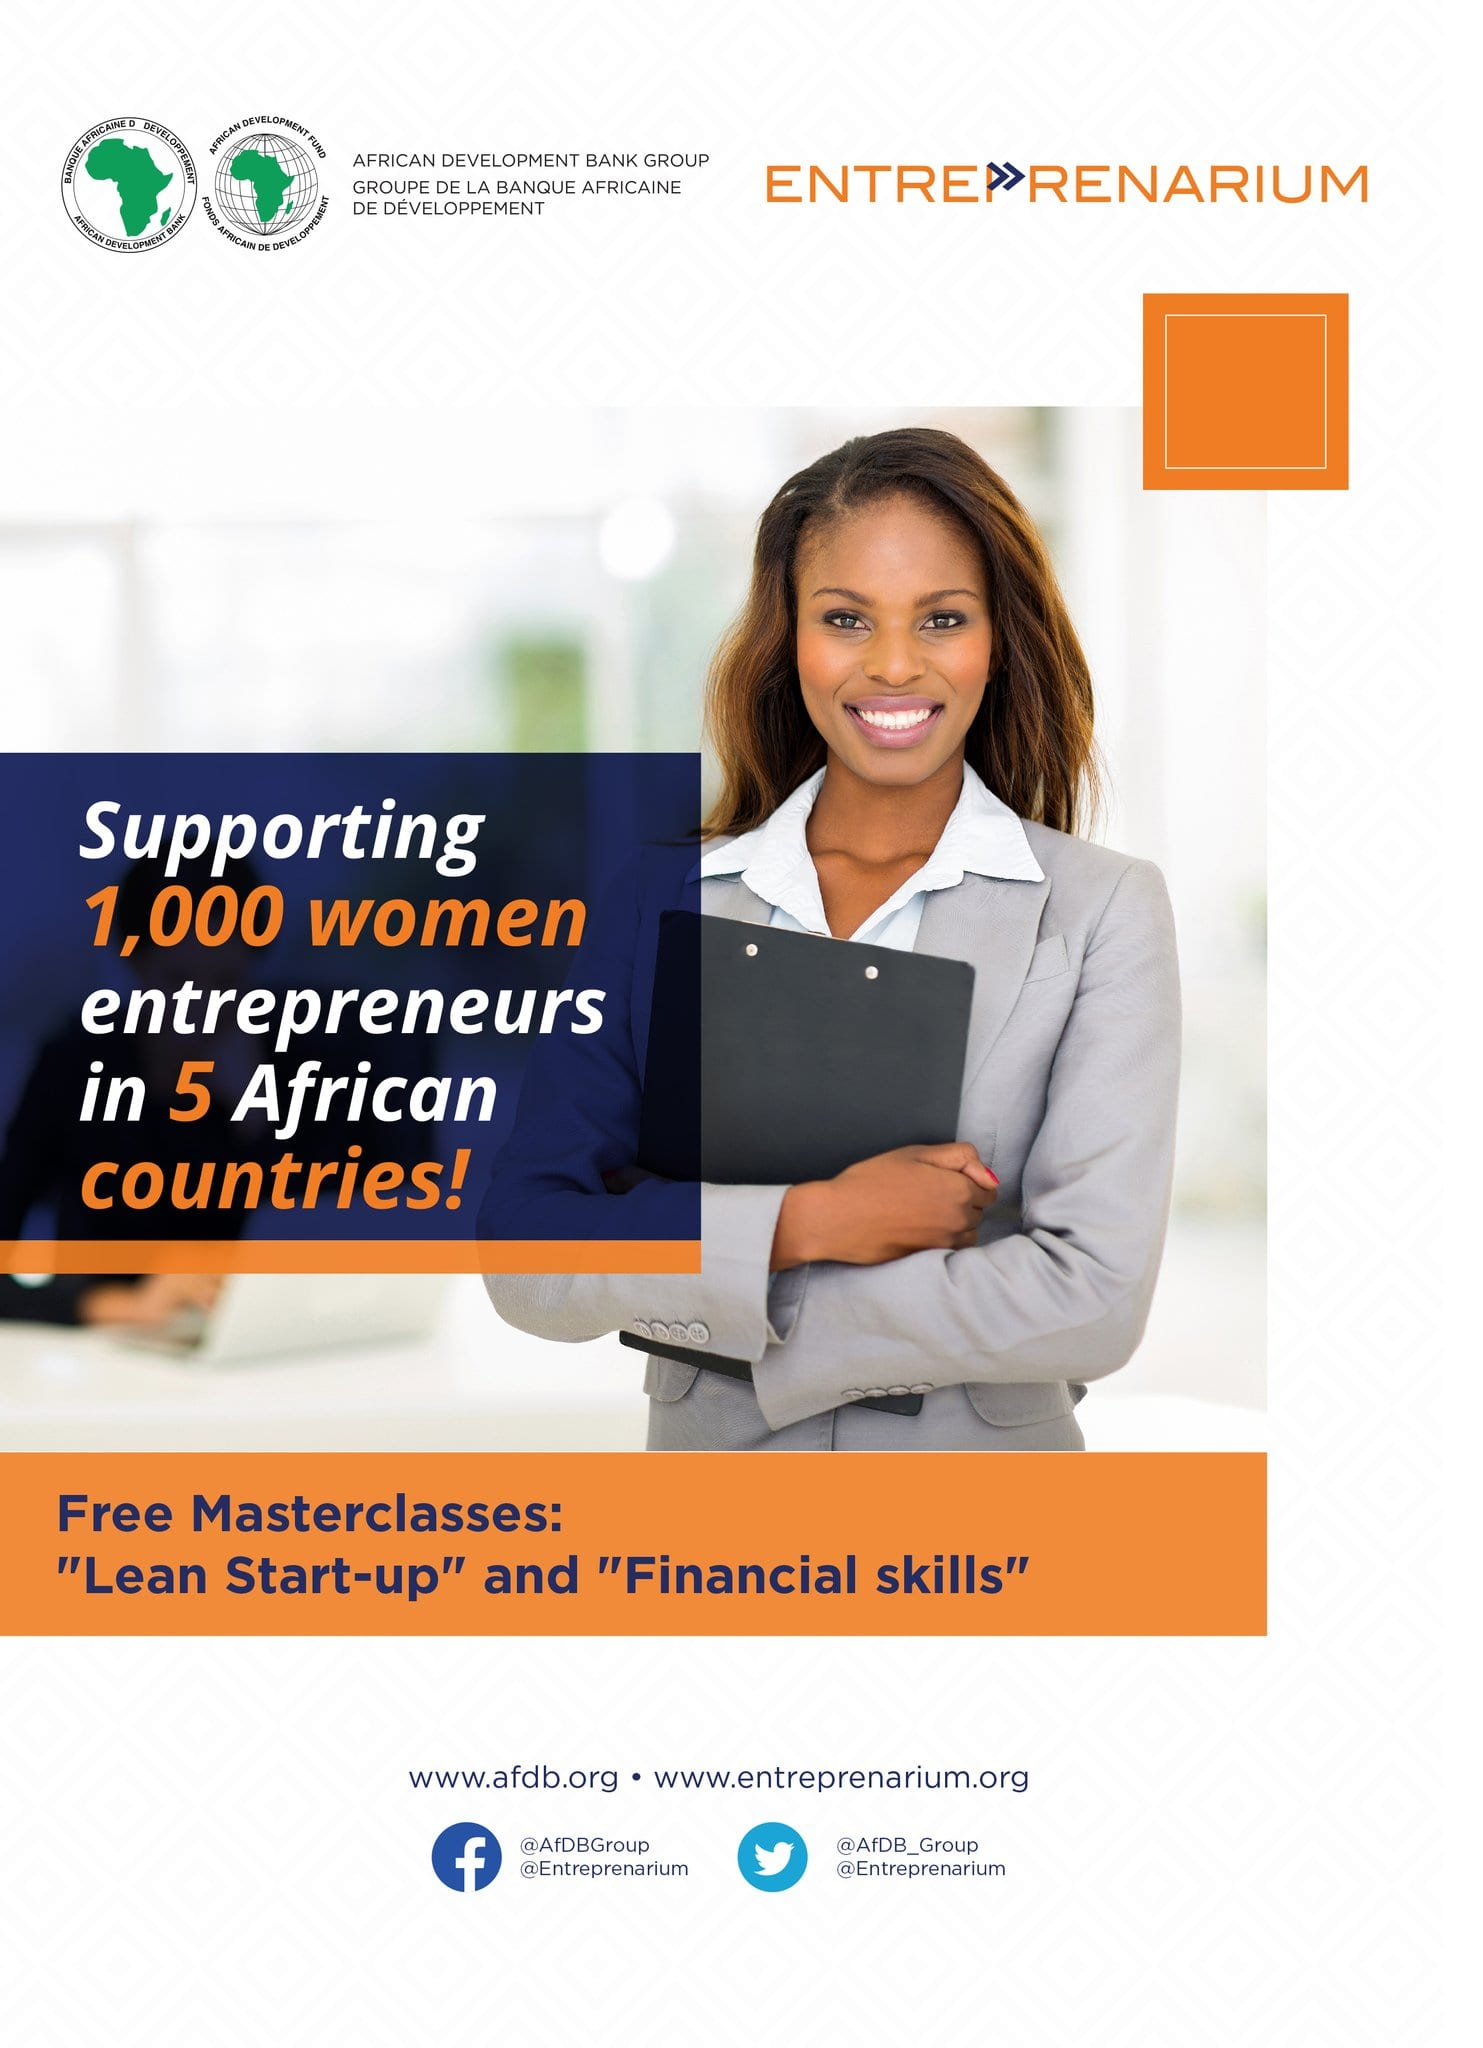 African Advancement Bank/Entreprenarium Structure 2018/2019 Masterclass for ladies business owners in Africa.